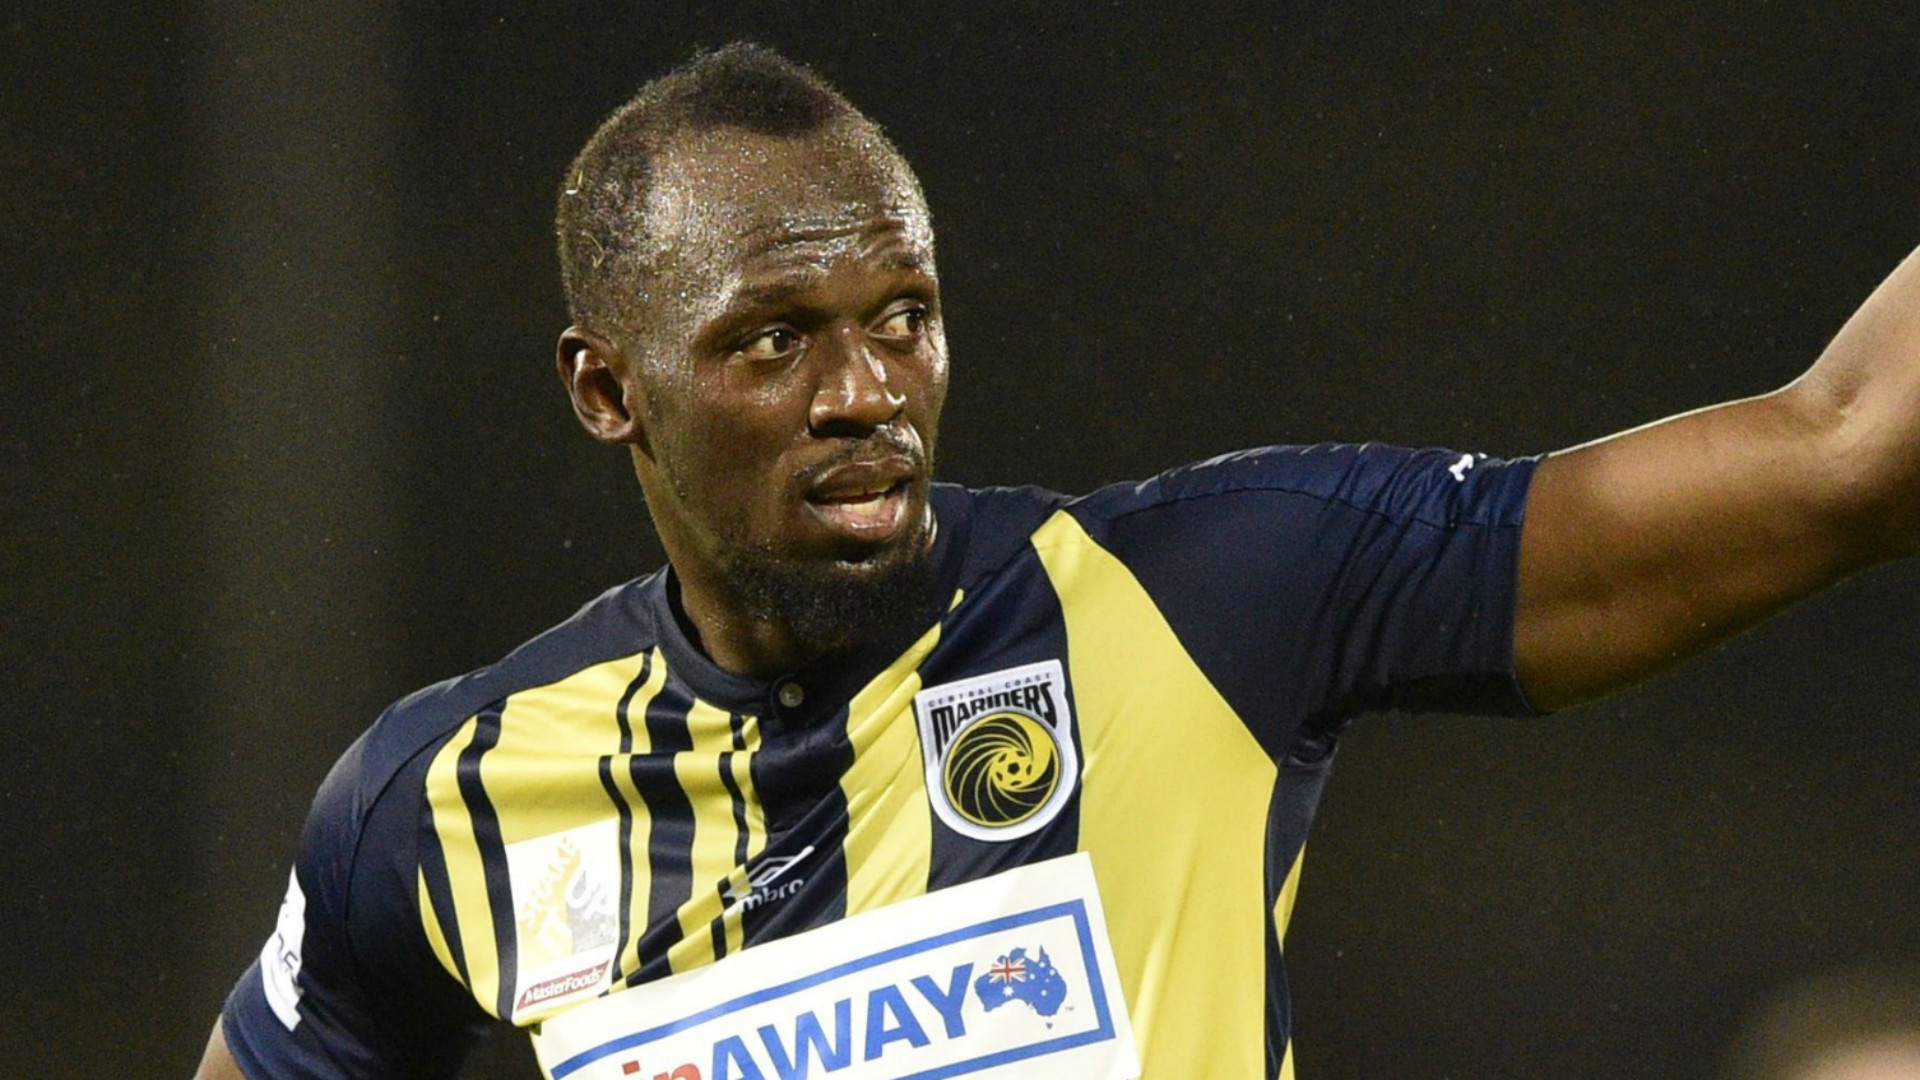 Mariners coach unaware of Bolt contract